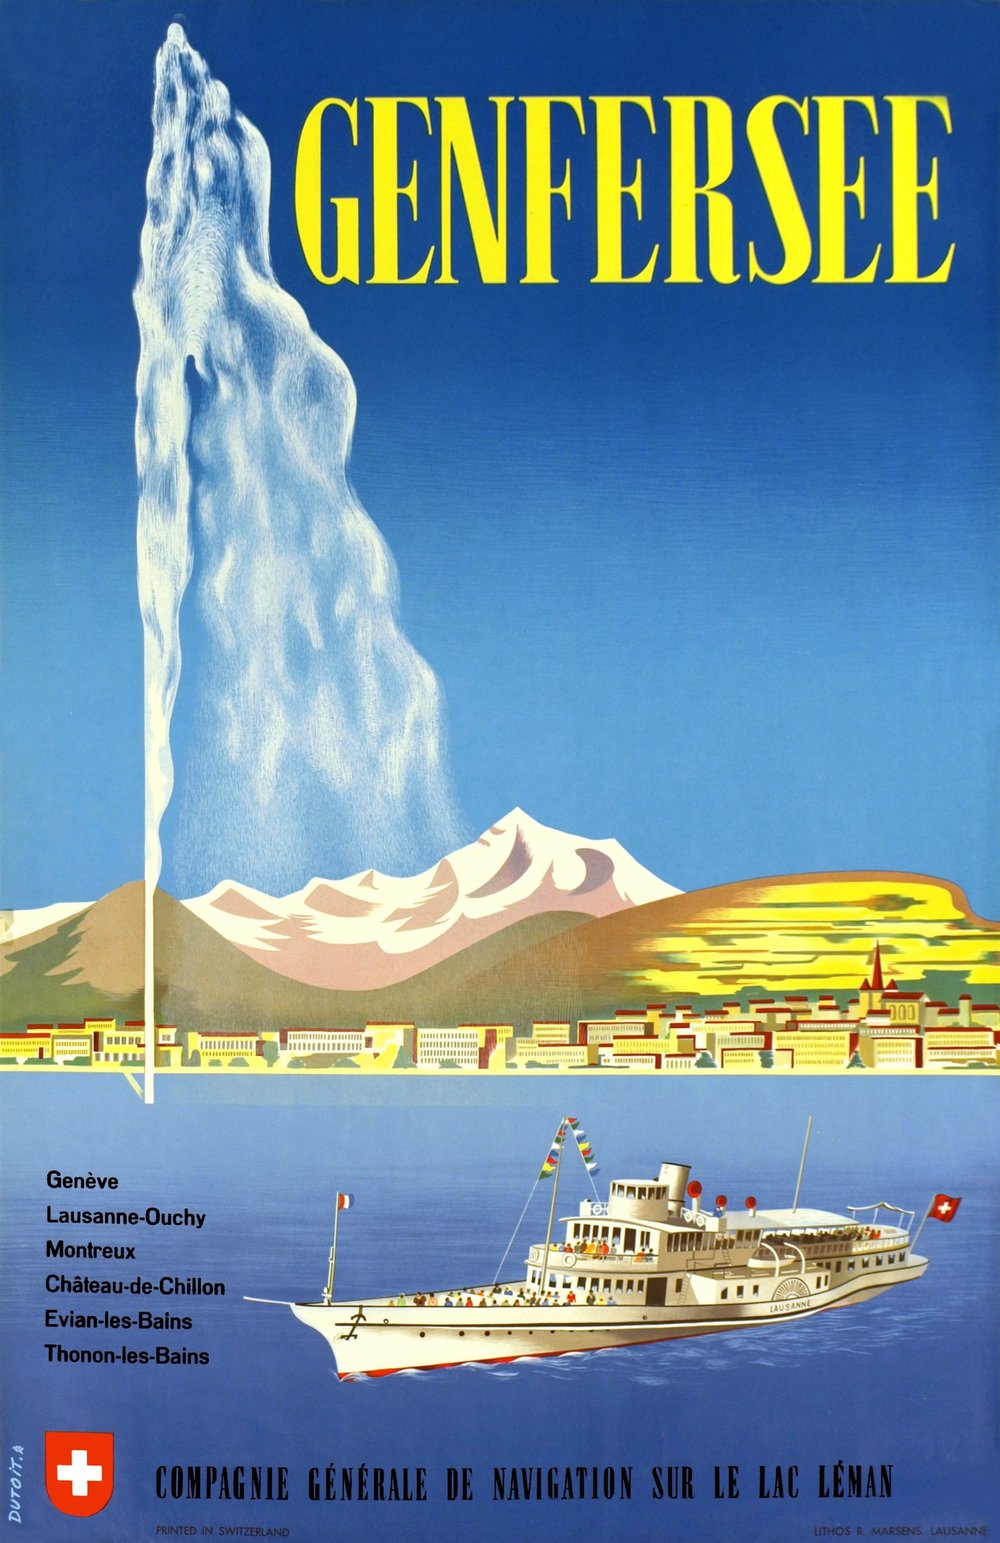 Vintage poster of Geneva of Lac Léman, a paddle boat, the Jet d'Eau and the Salève and the Mont Blanc in the background, in German.